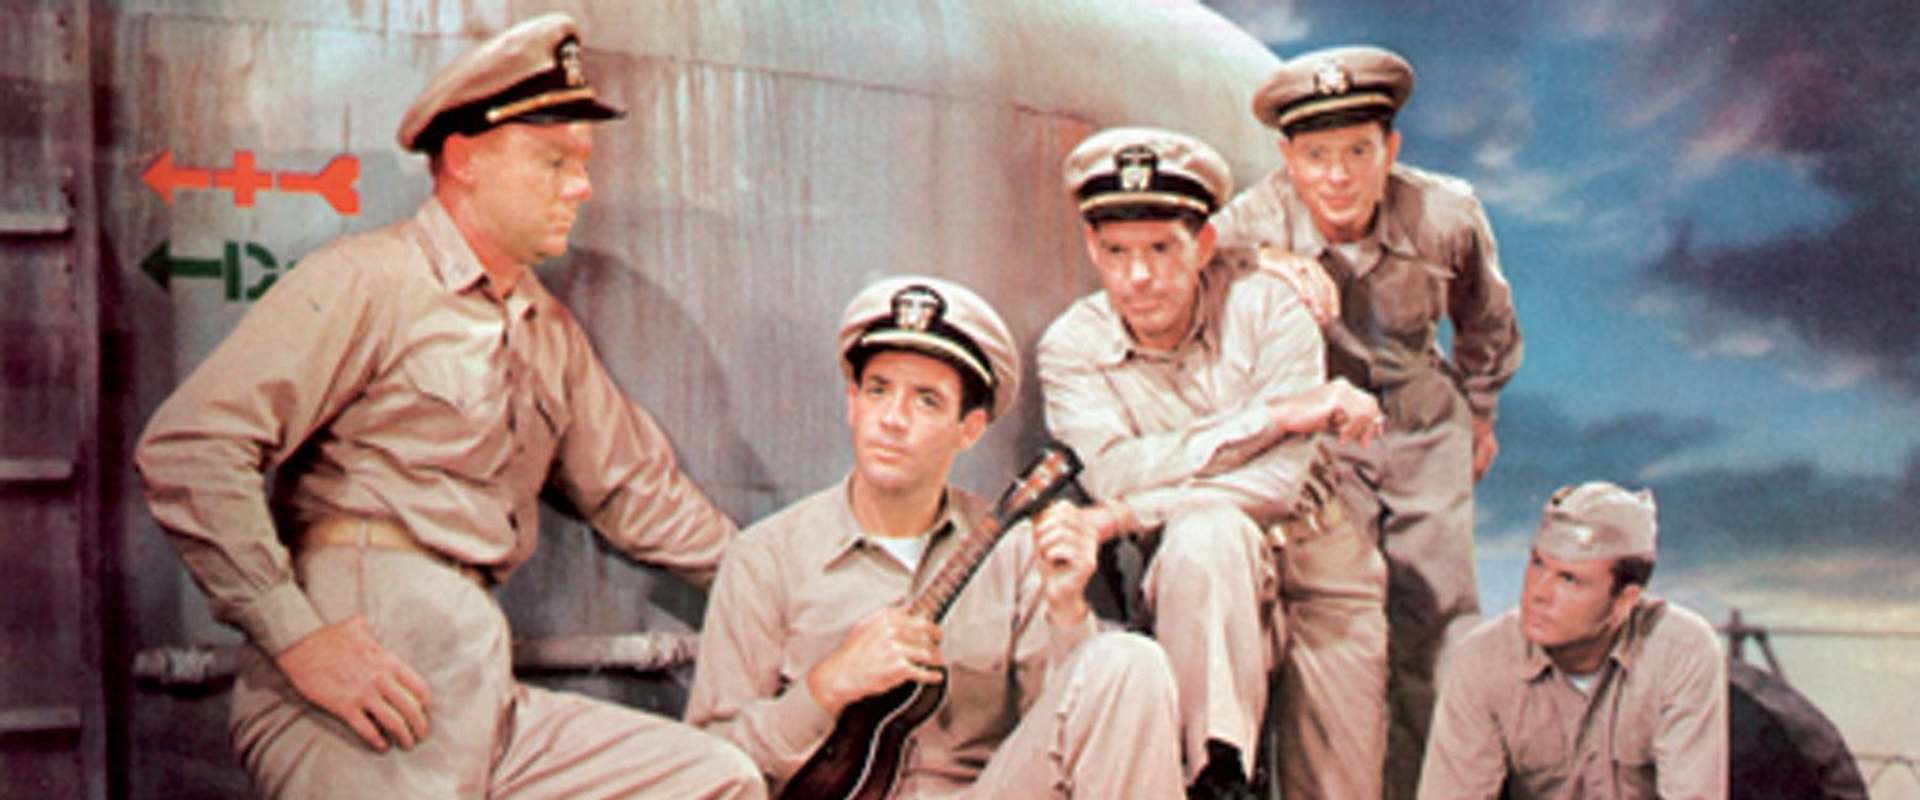 the caine mutiny movie free online